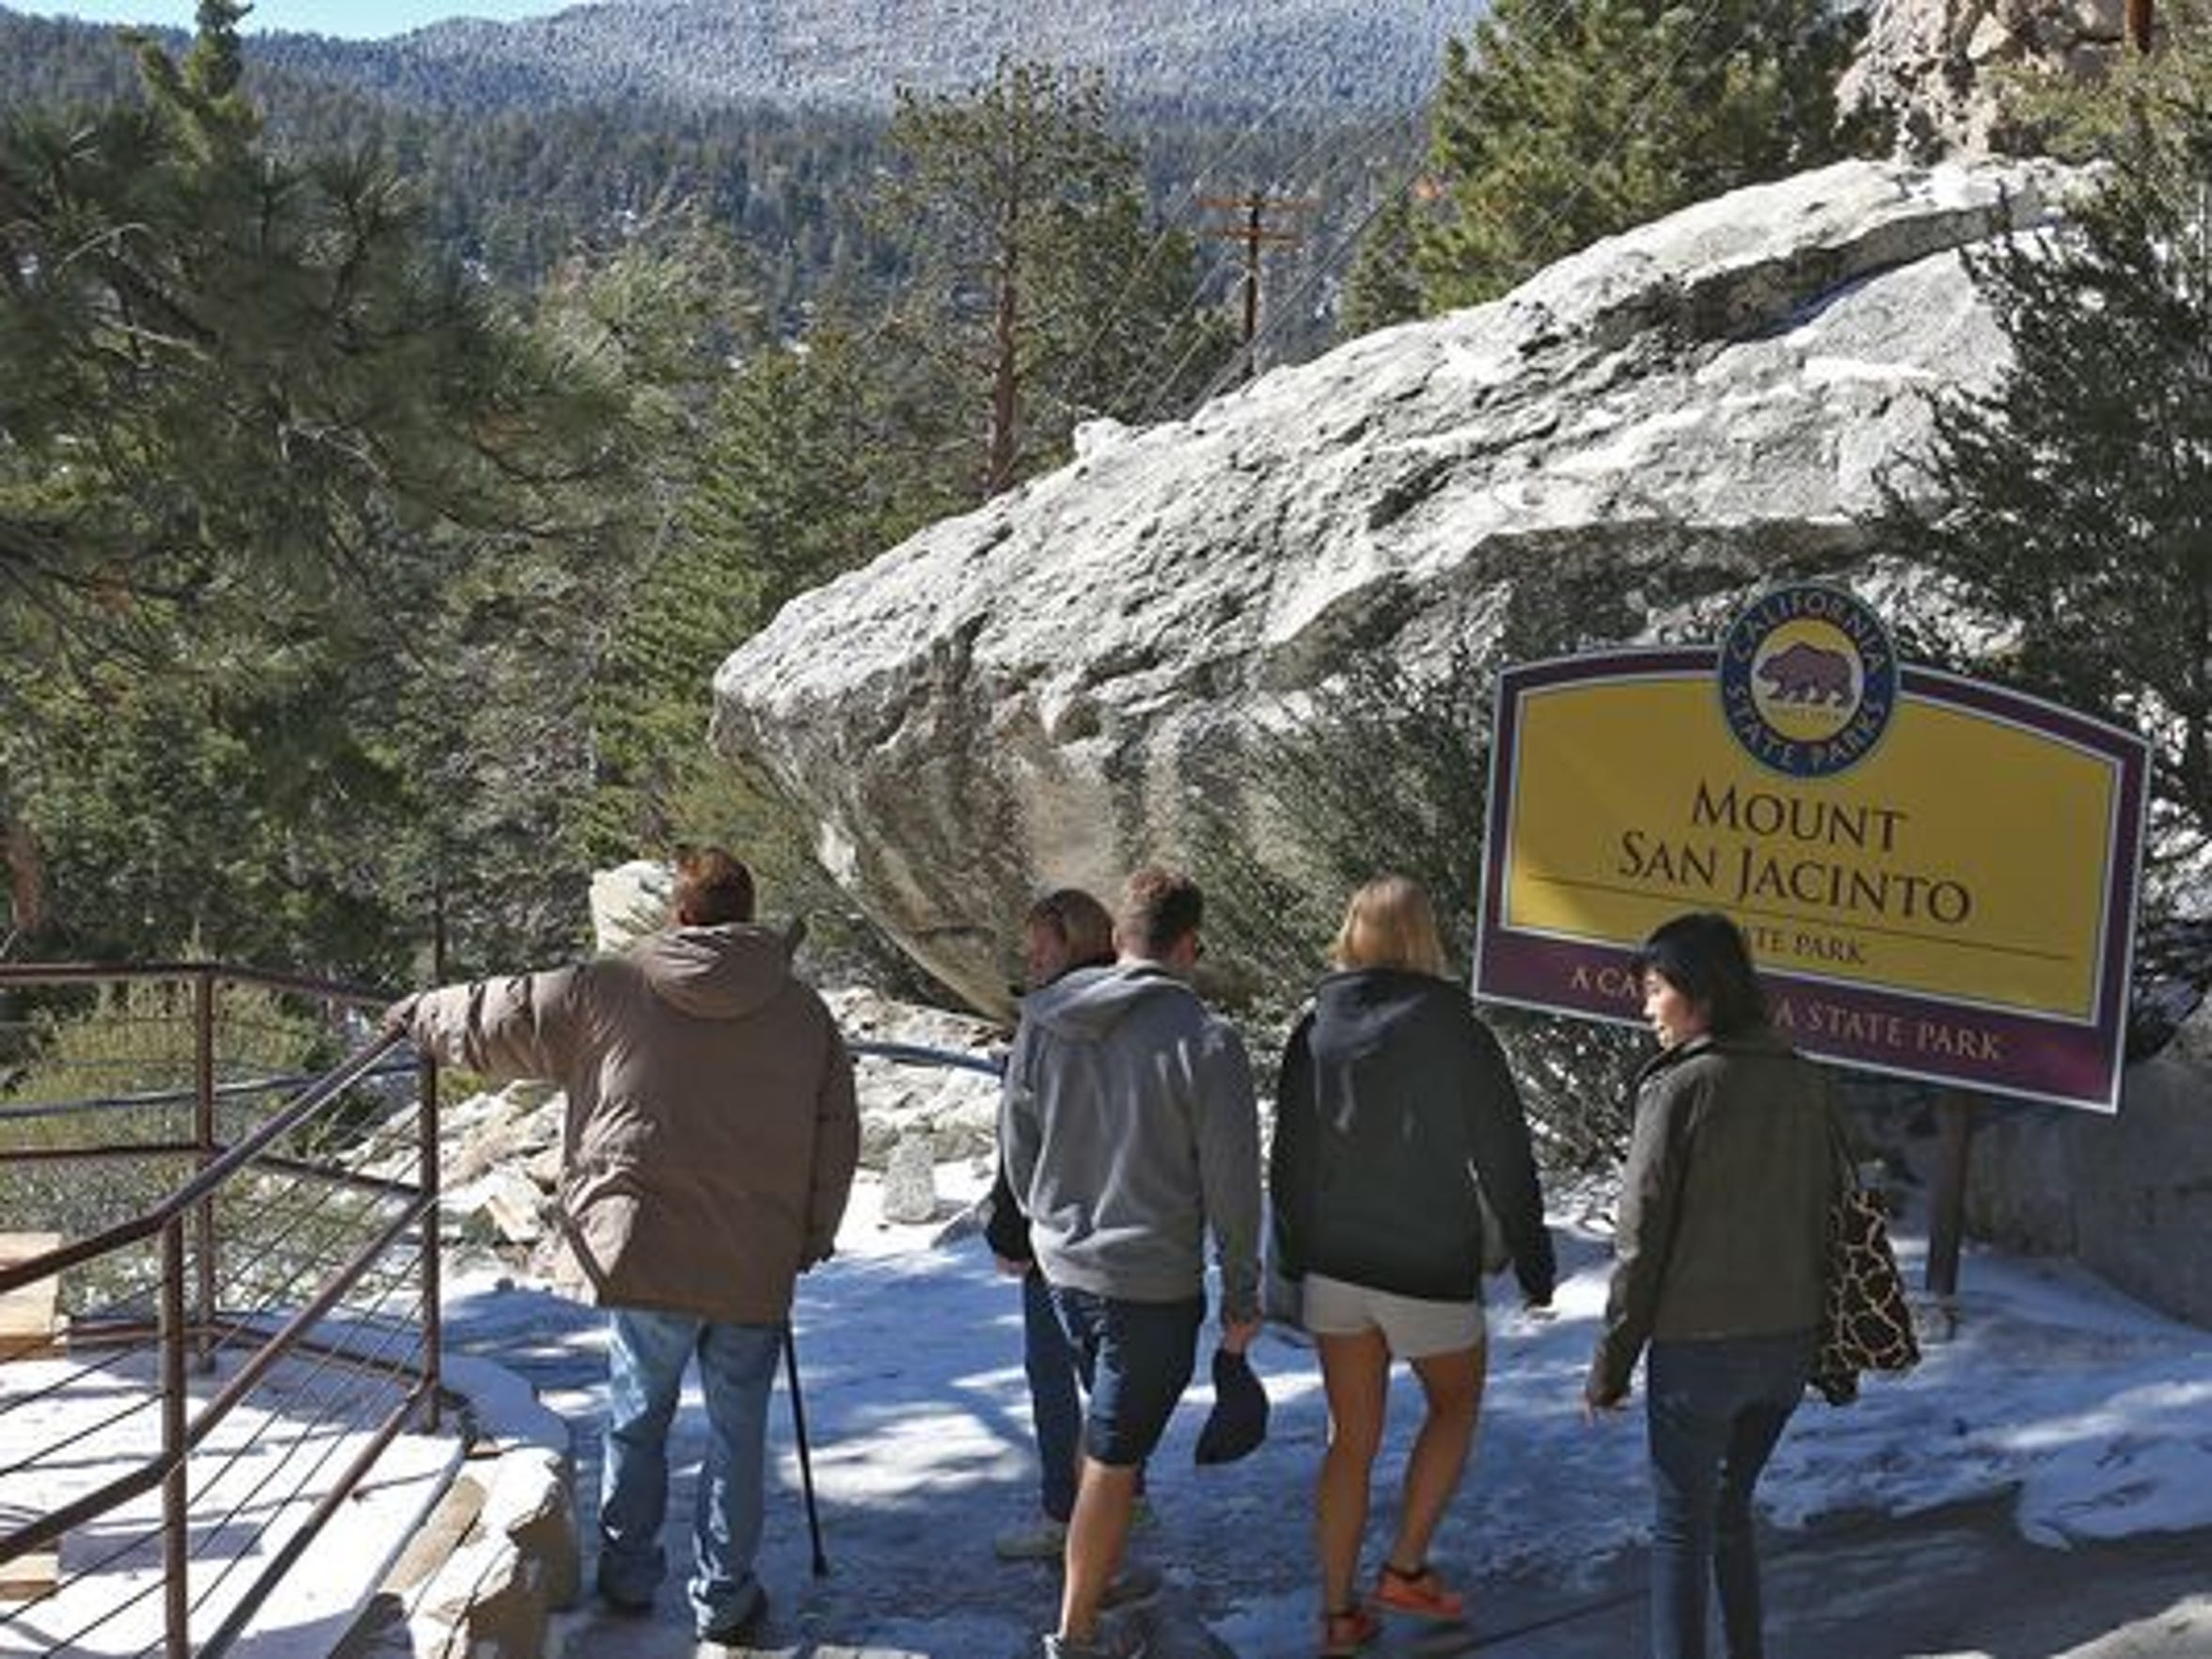 Visitors to the Coachella Valley enjoy taking the Palm Springs Aerial Tramway up to Mount San Jacinto State Park to escape the summer heat.